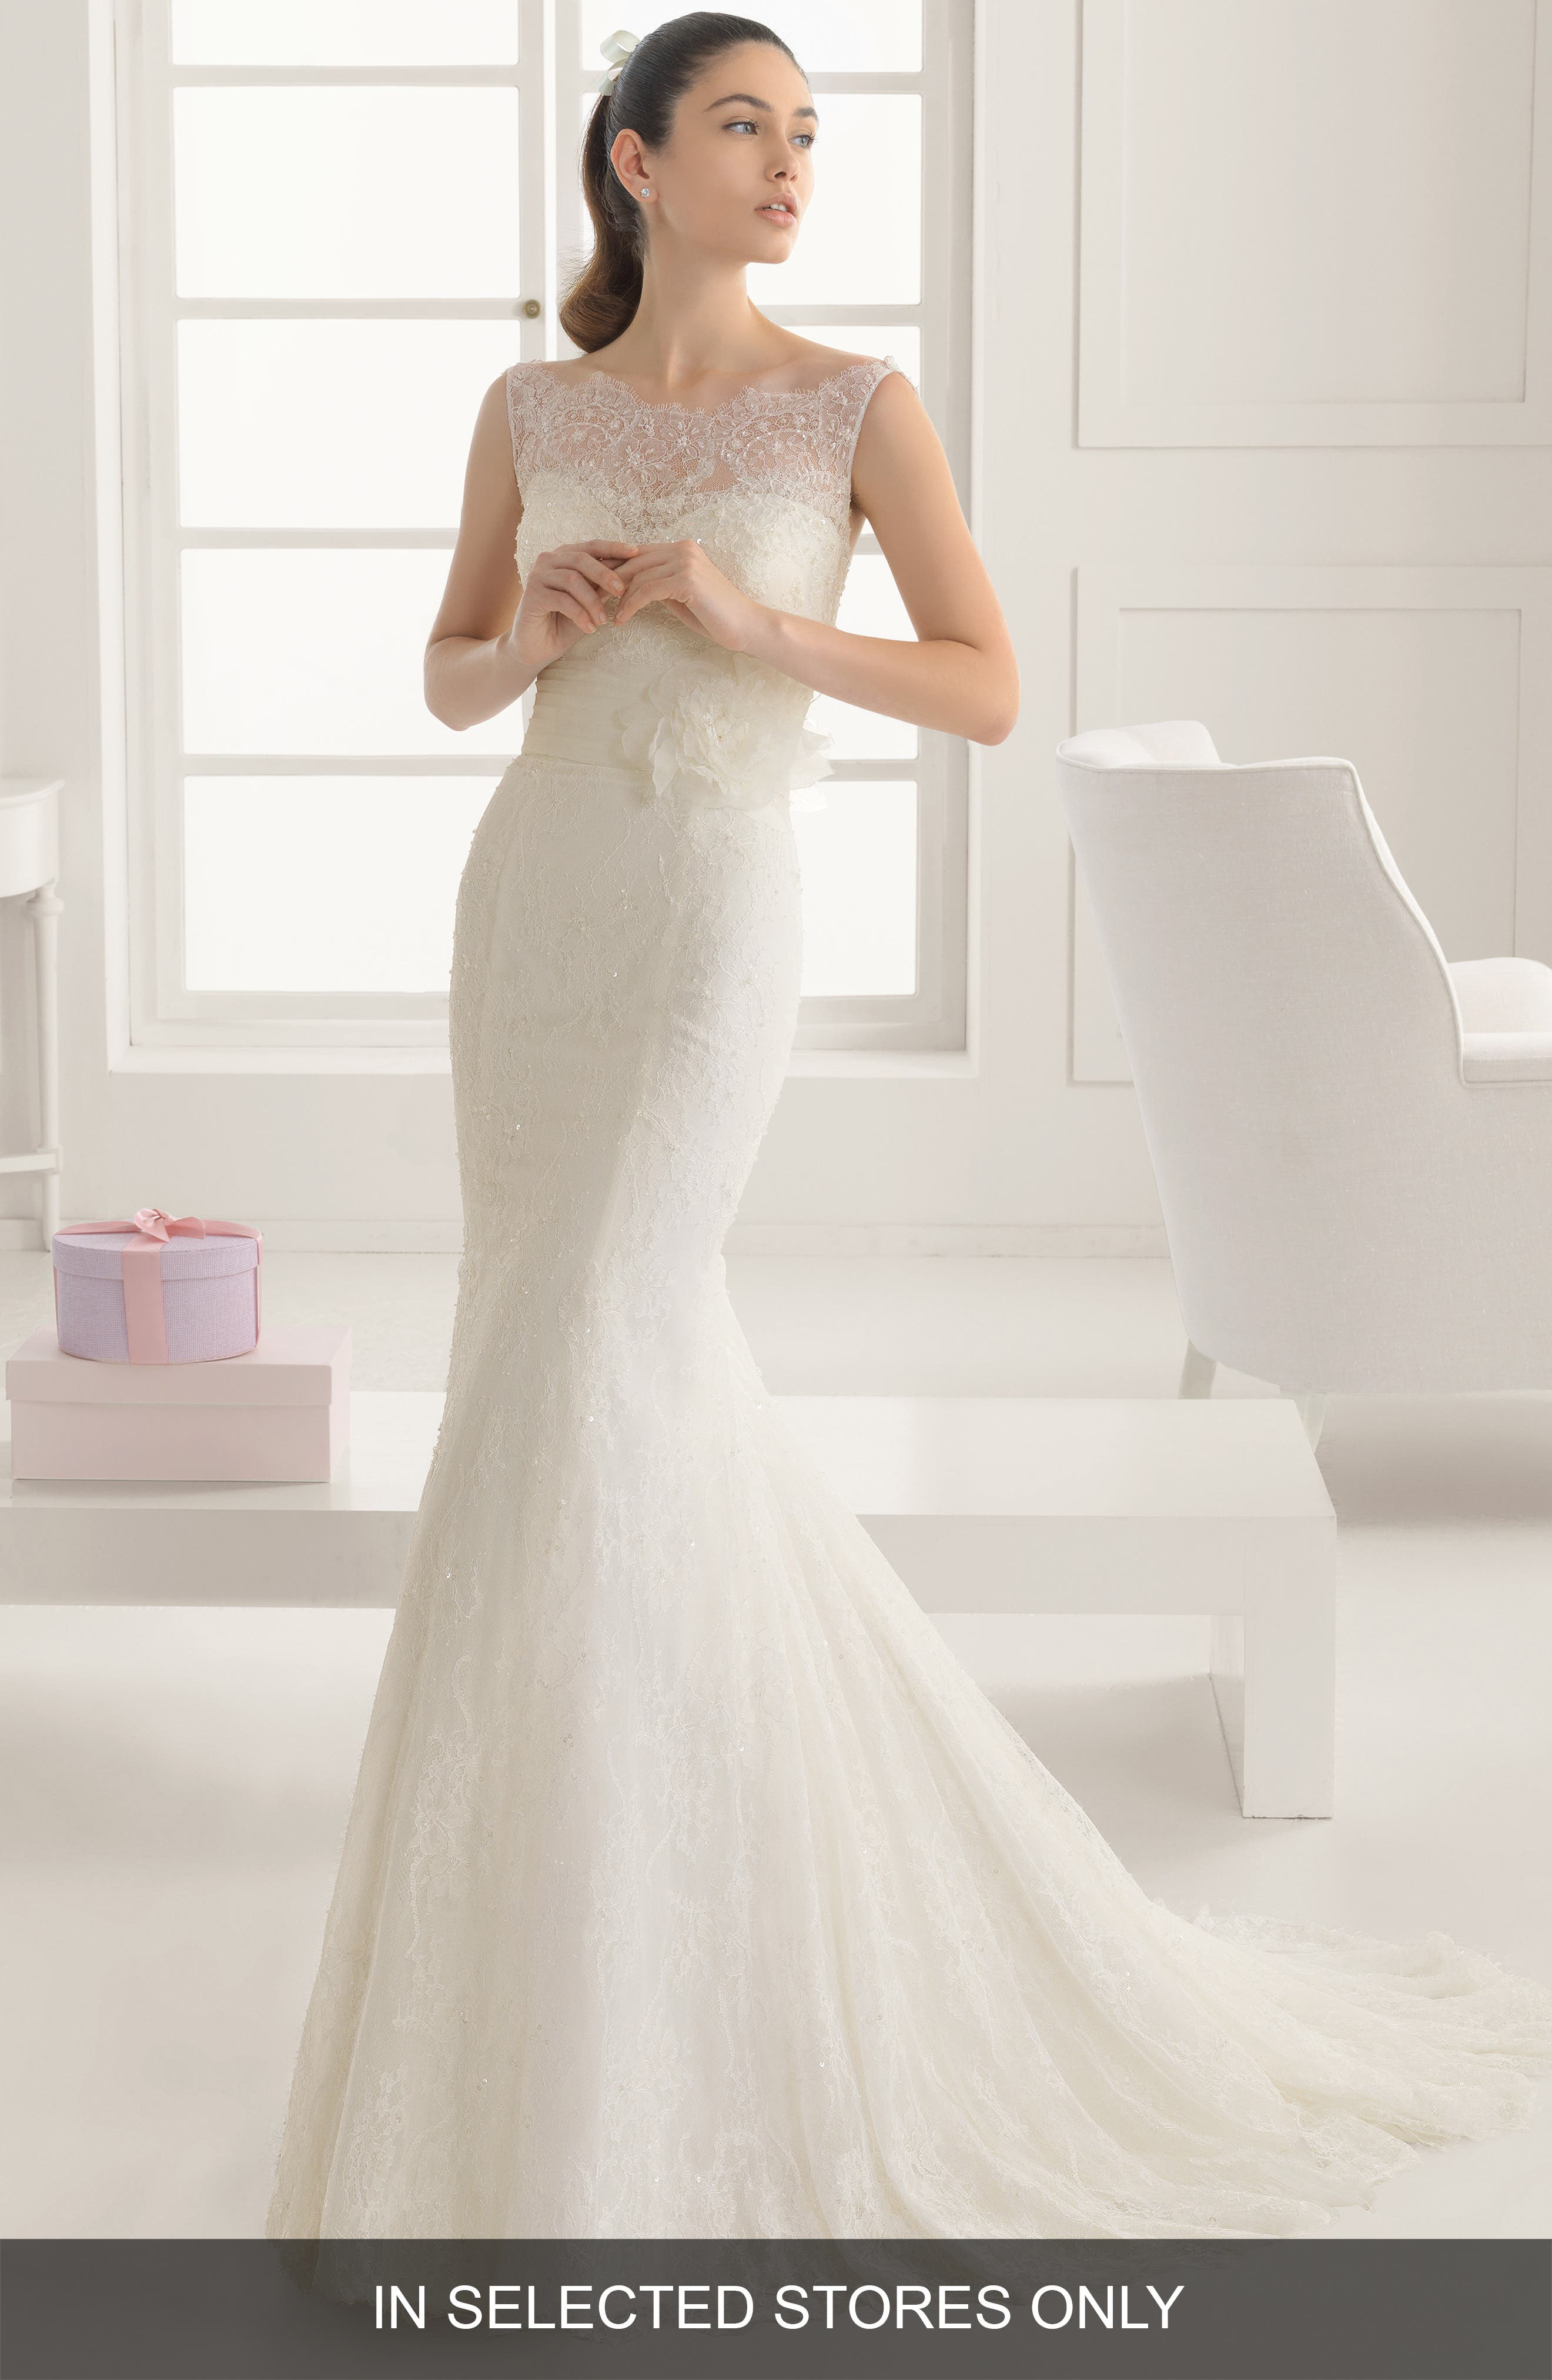 Main Image - Rosa Clara Evelyn Floral Detail Lace & Tulle Sleeveless Trumpet Dress